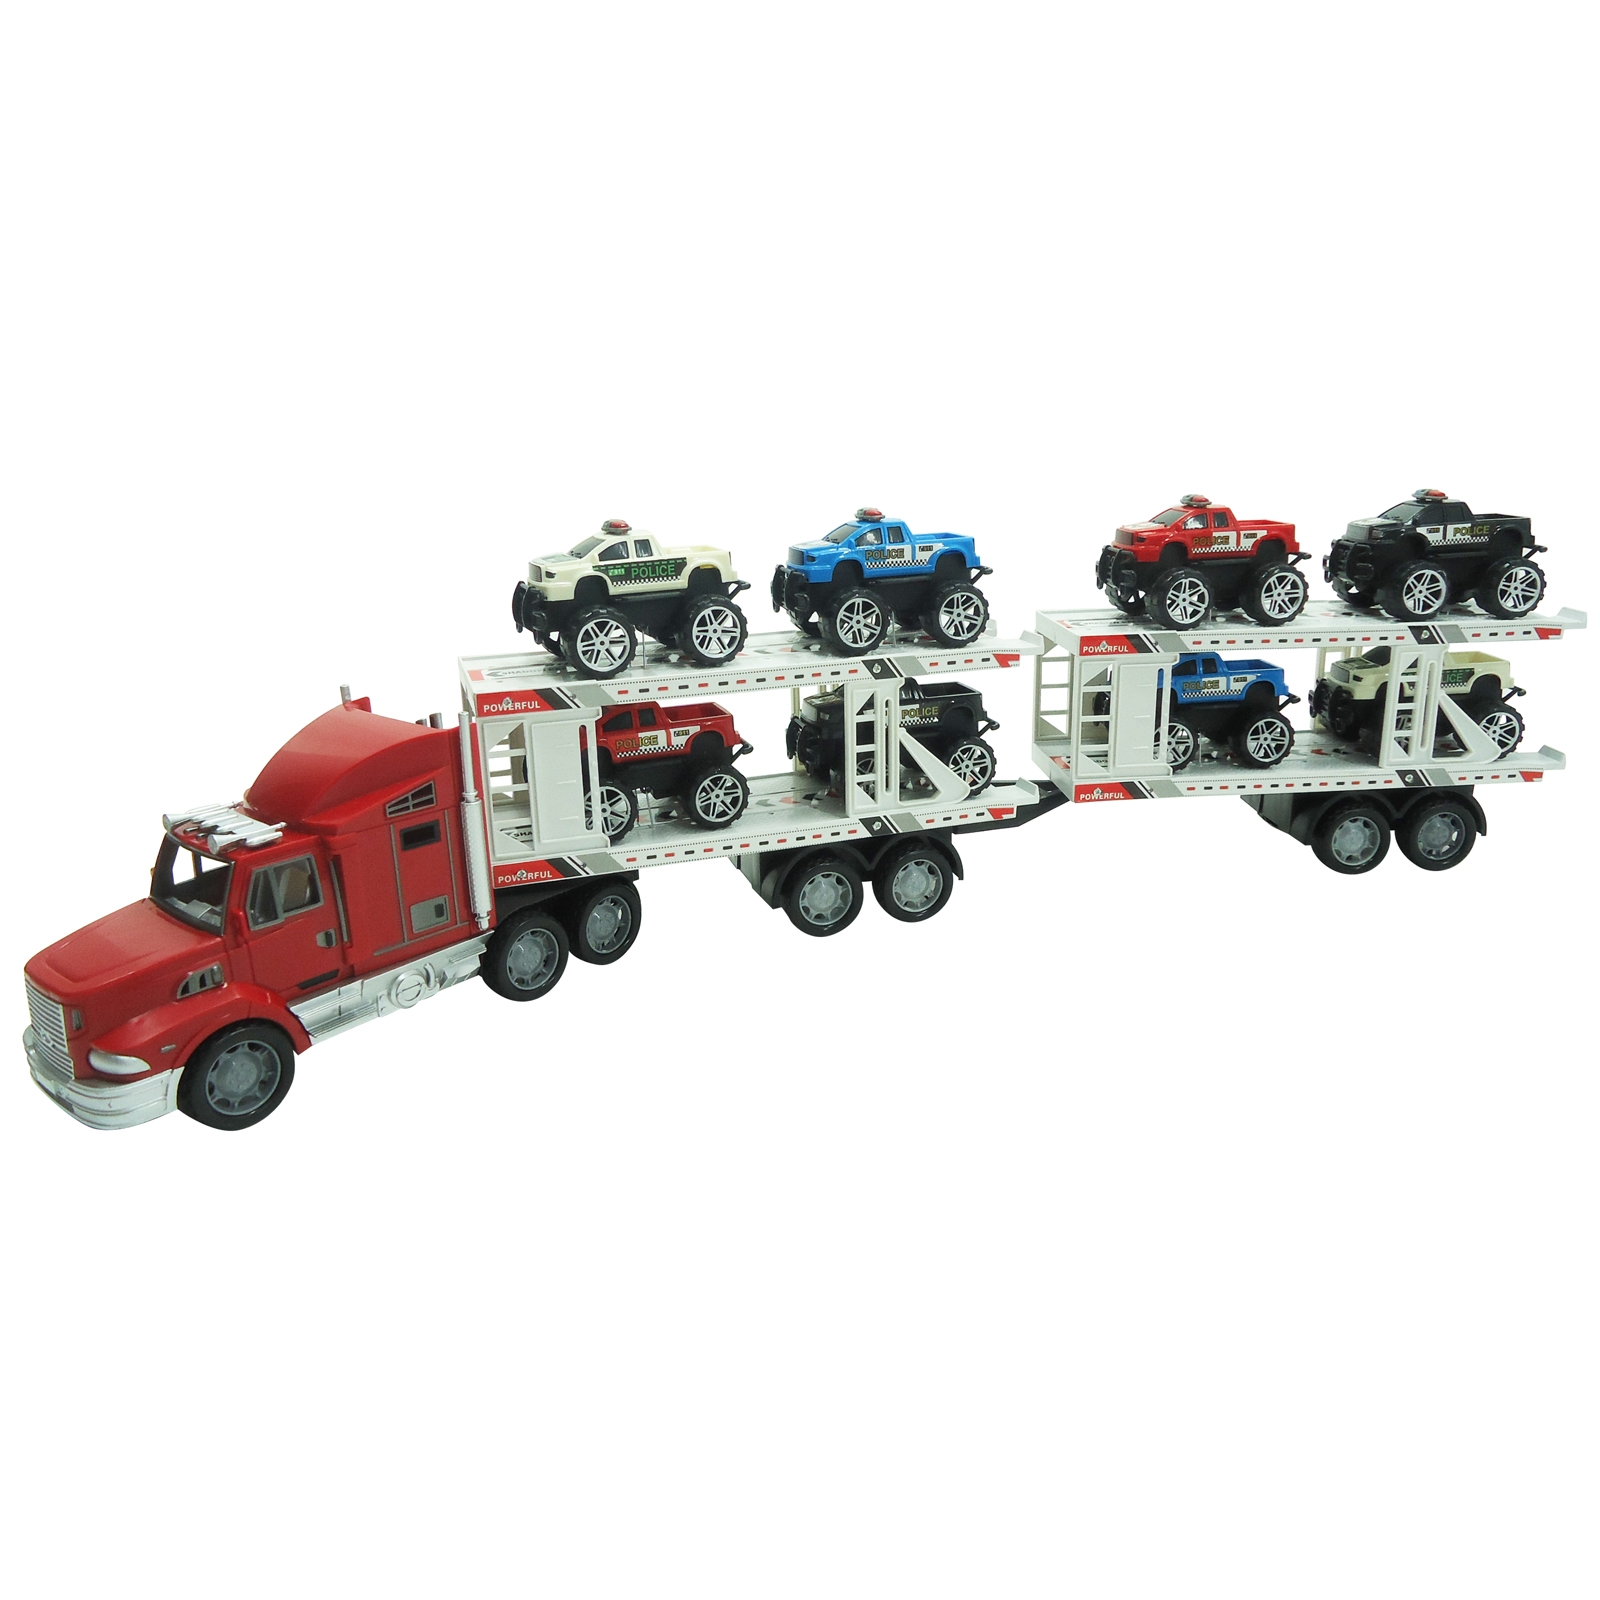 Extreme Semi Truck Trailer with 8 Monster Cars Friction Powered Toy